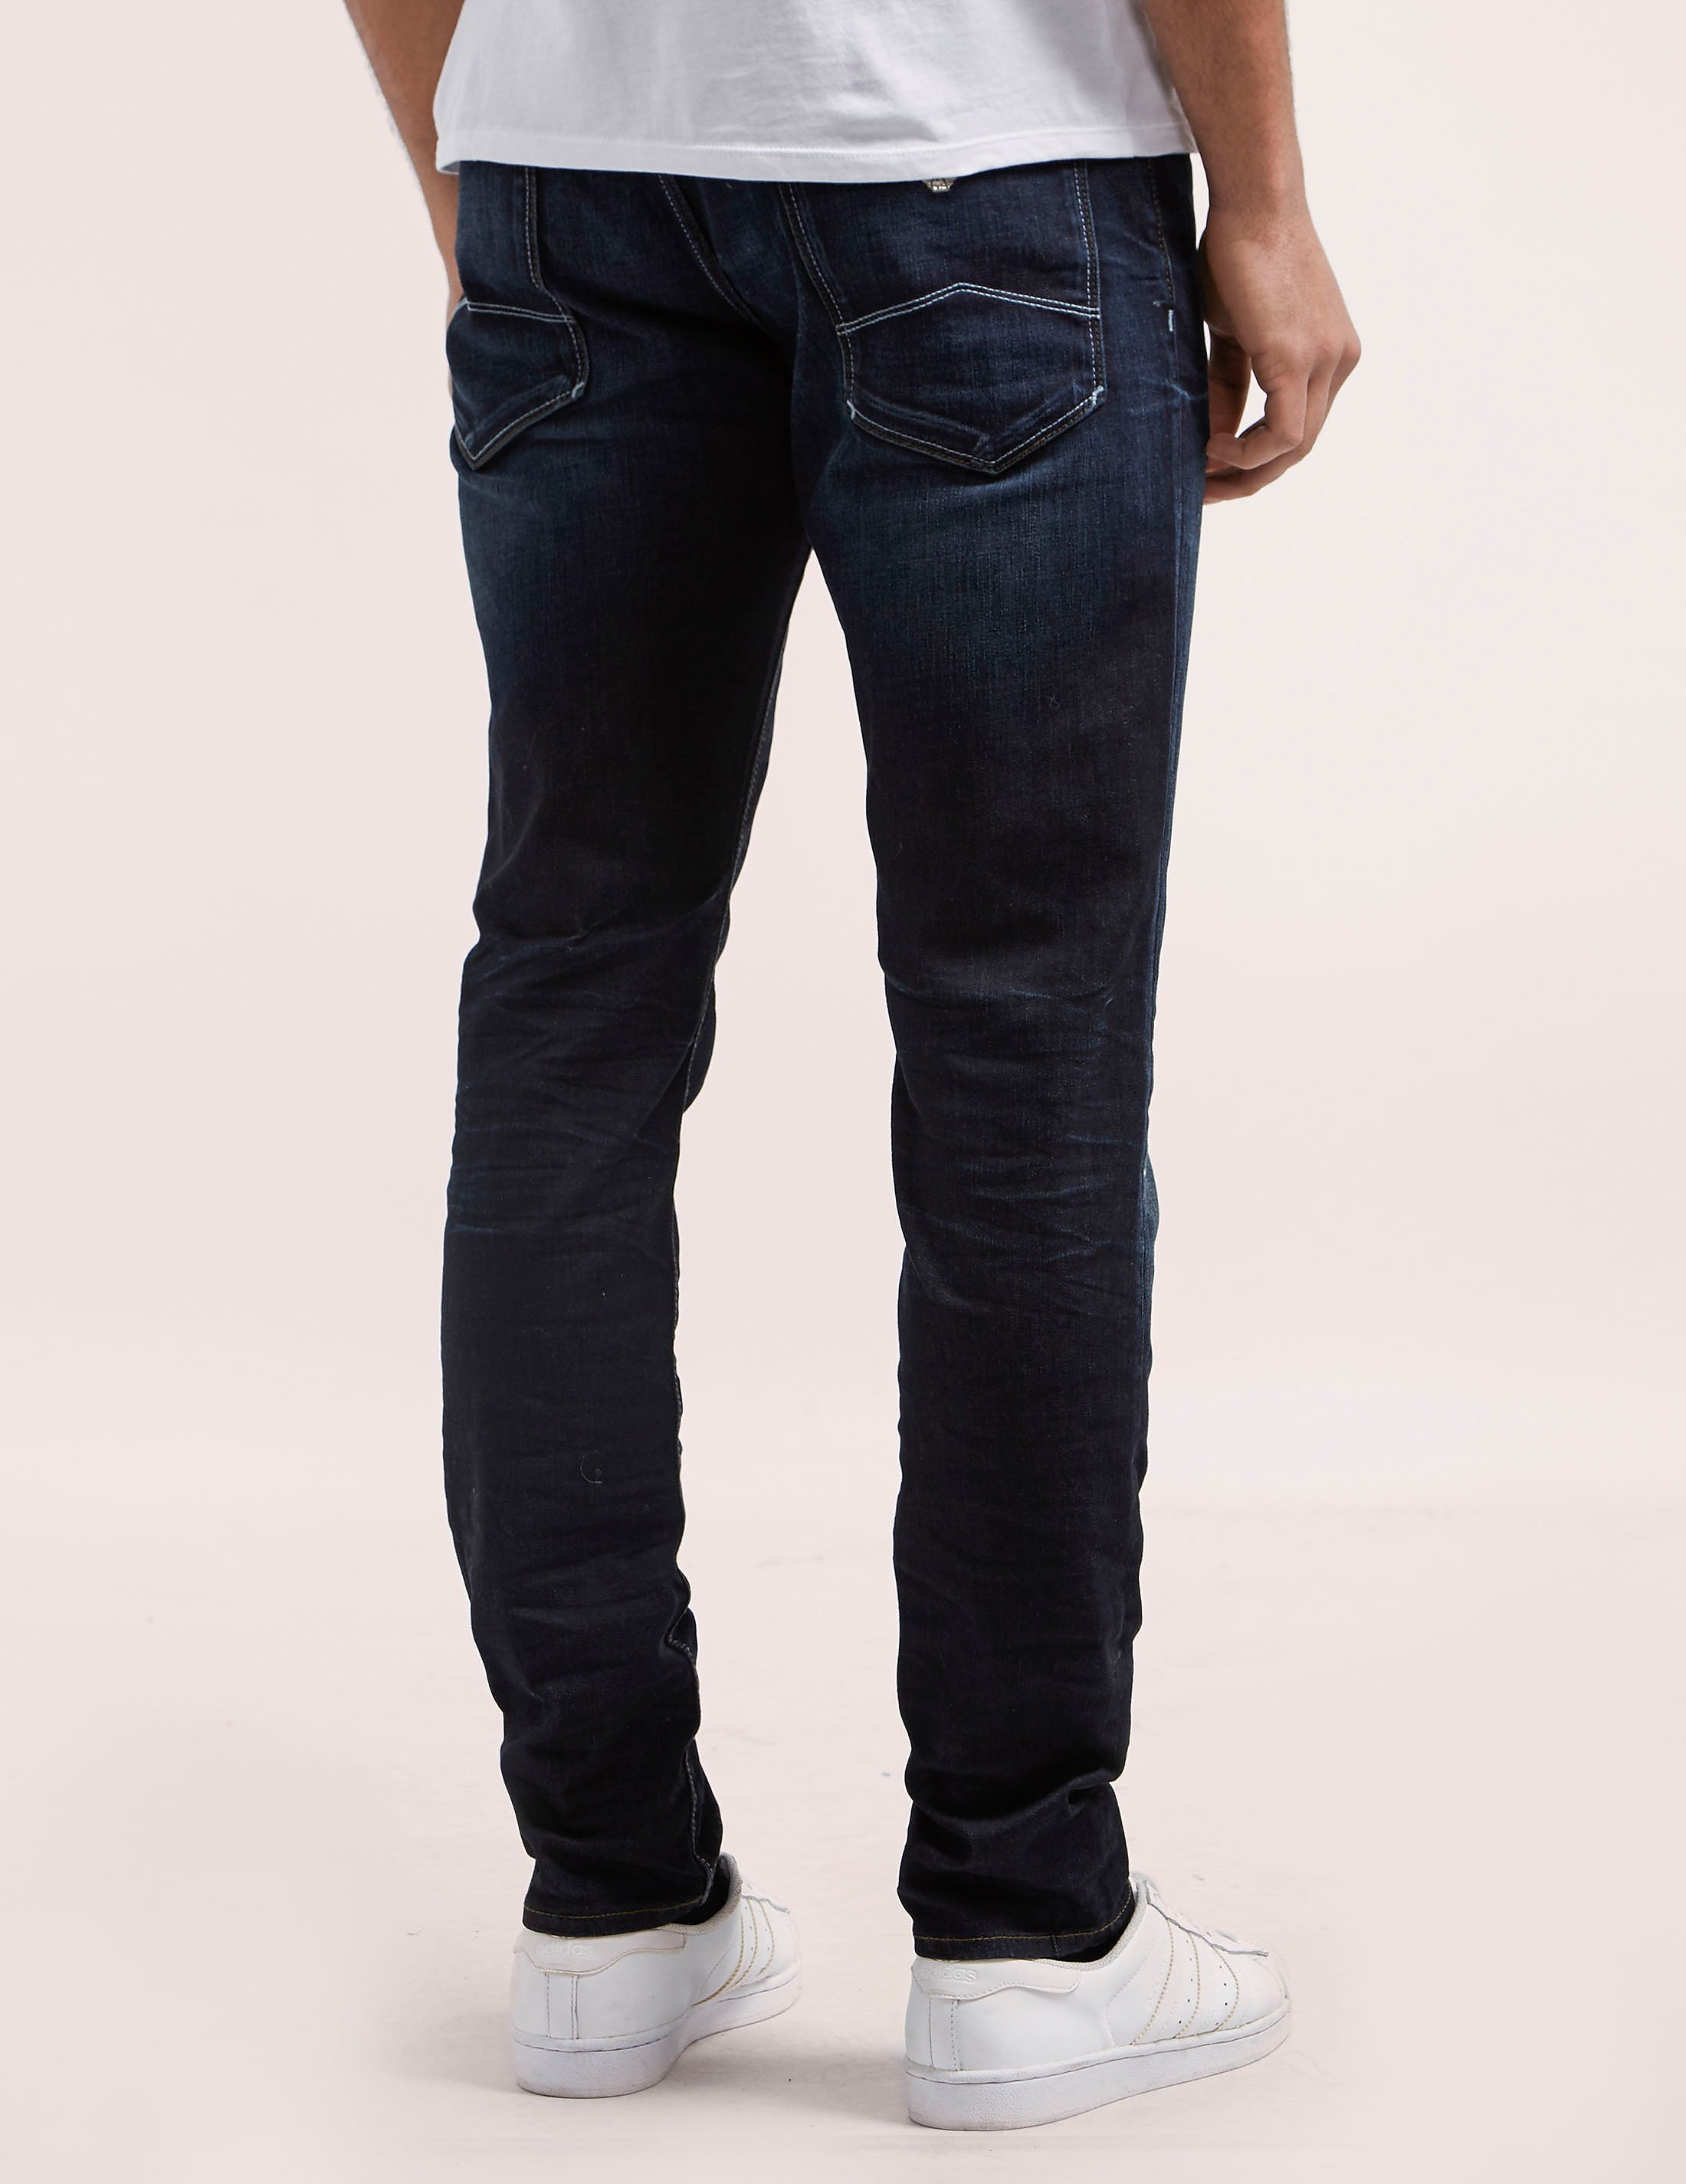 Armani Jeans J06 Regular Fit Jean